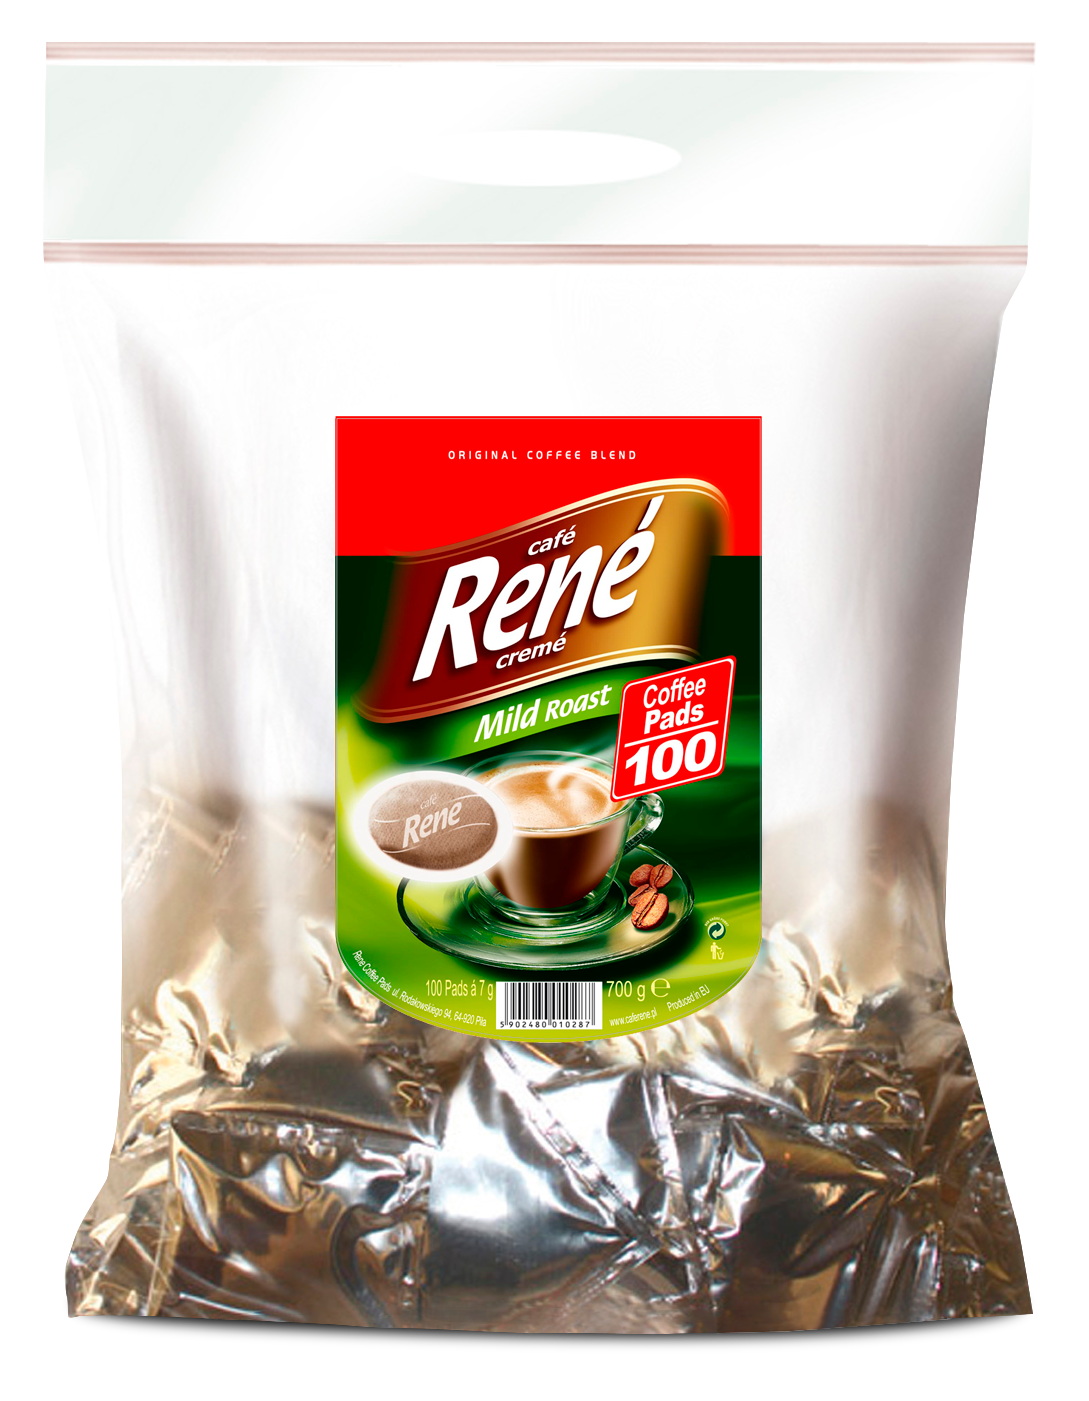 Coffee Pads Mild 100 - Rene Cafe